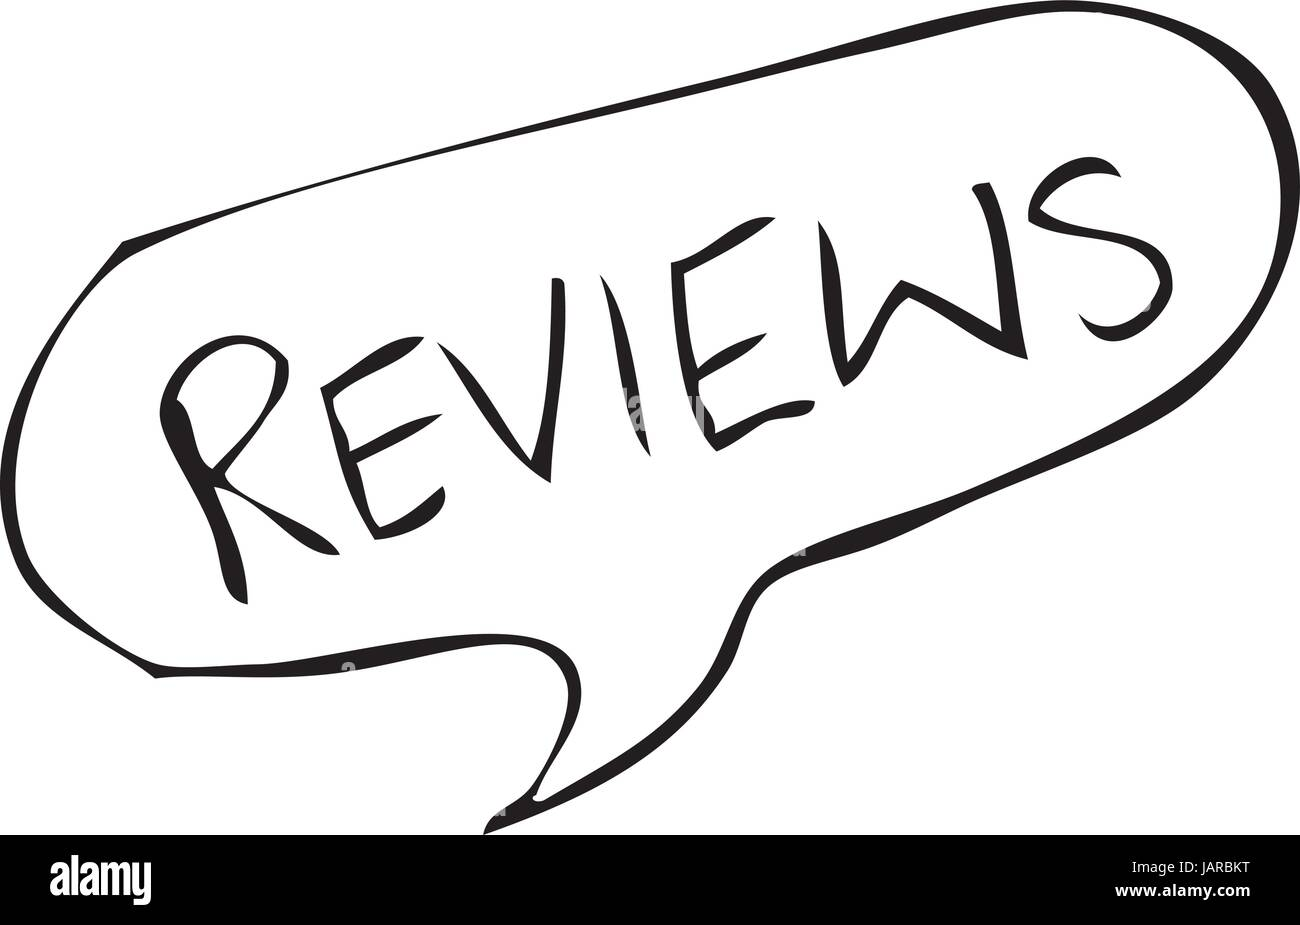 Reviews written in speech bubble in a rough hand drawn sketch style vector - Stock Image